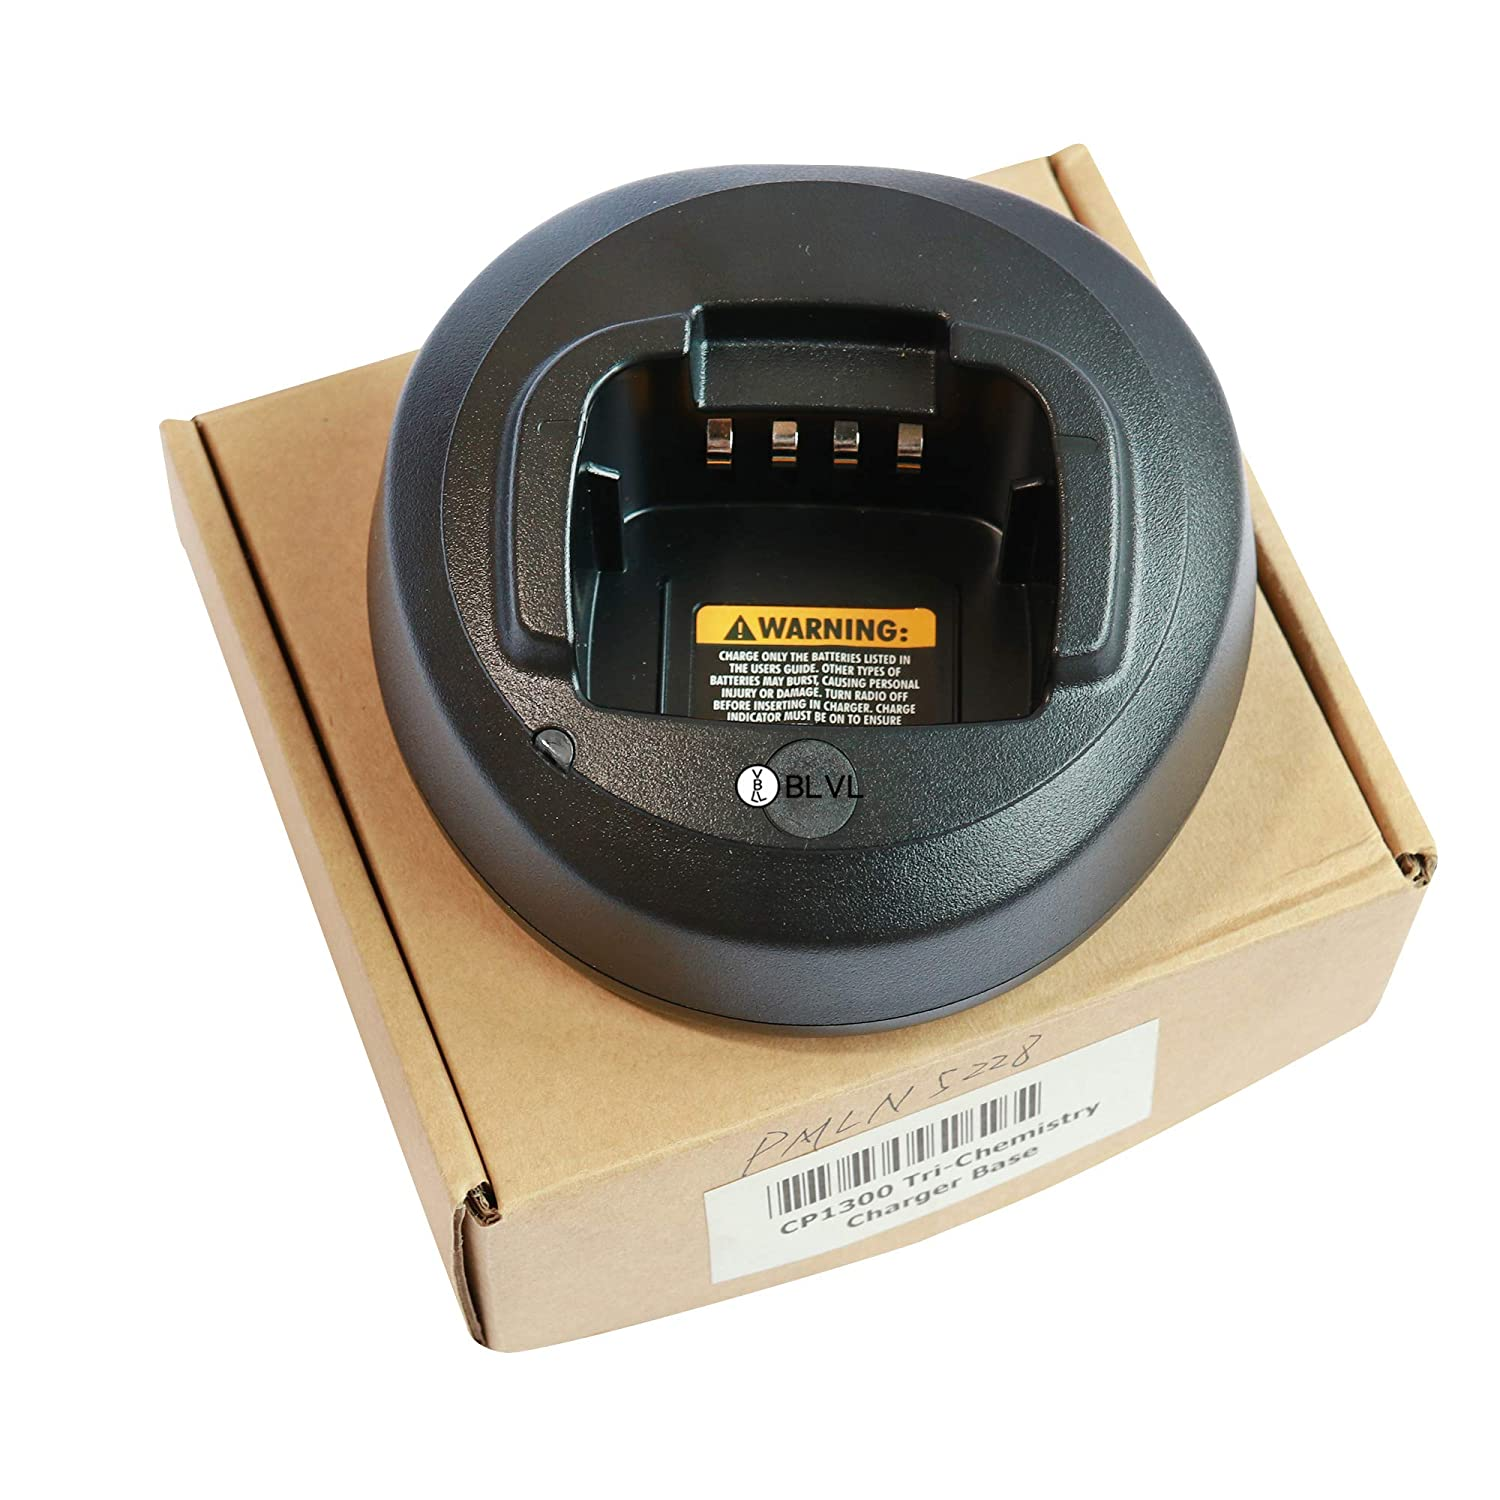 Pmln5228 Rapid Charger Base For Motorola Ep350 Cp476 Cp477 Cp1660 P140 P145 P160 Cp185 Cp1300 Cp1600 Portable Radio Back To Search Resultscellphones & Telecommunications